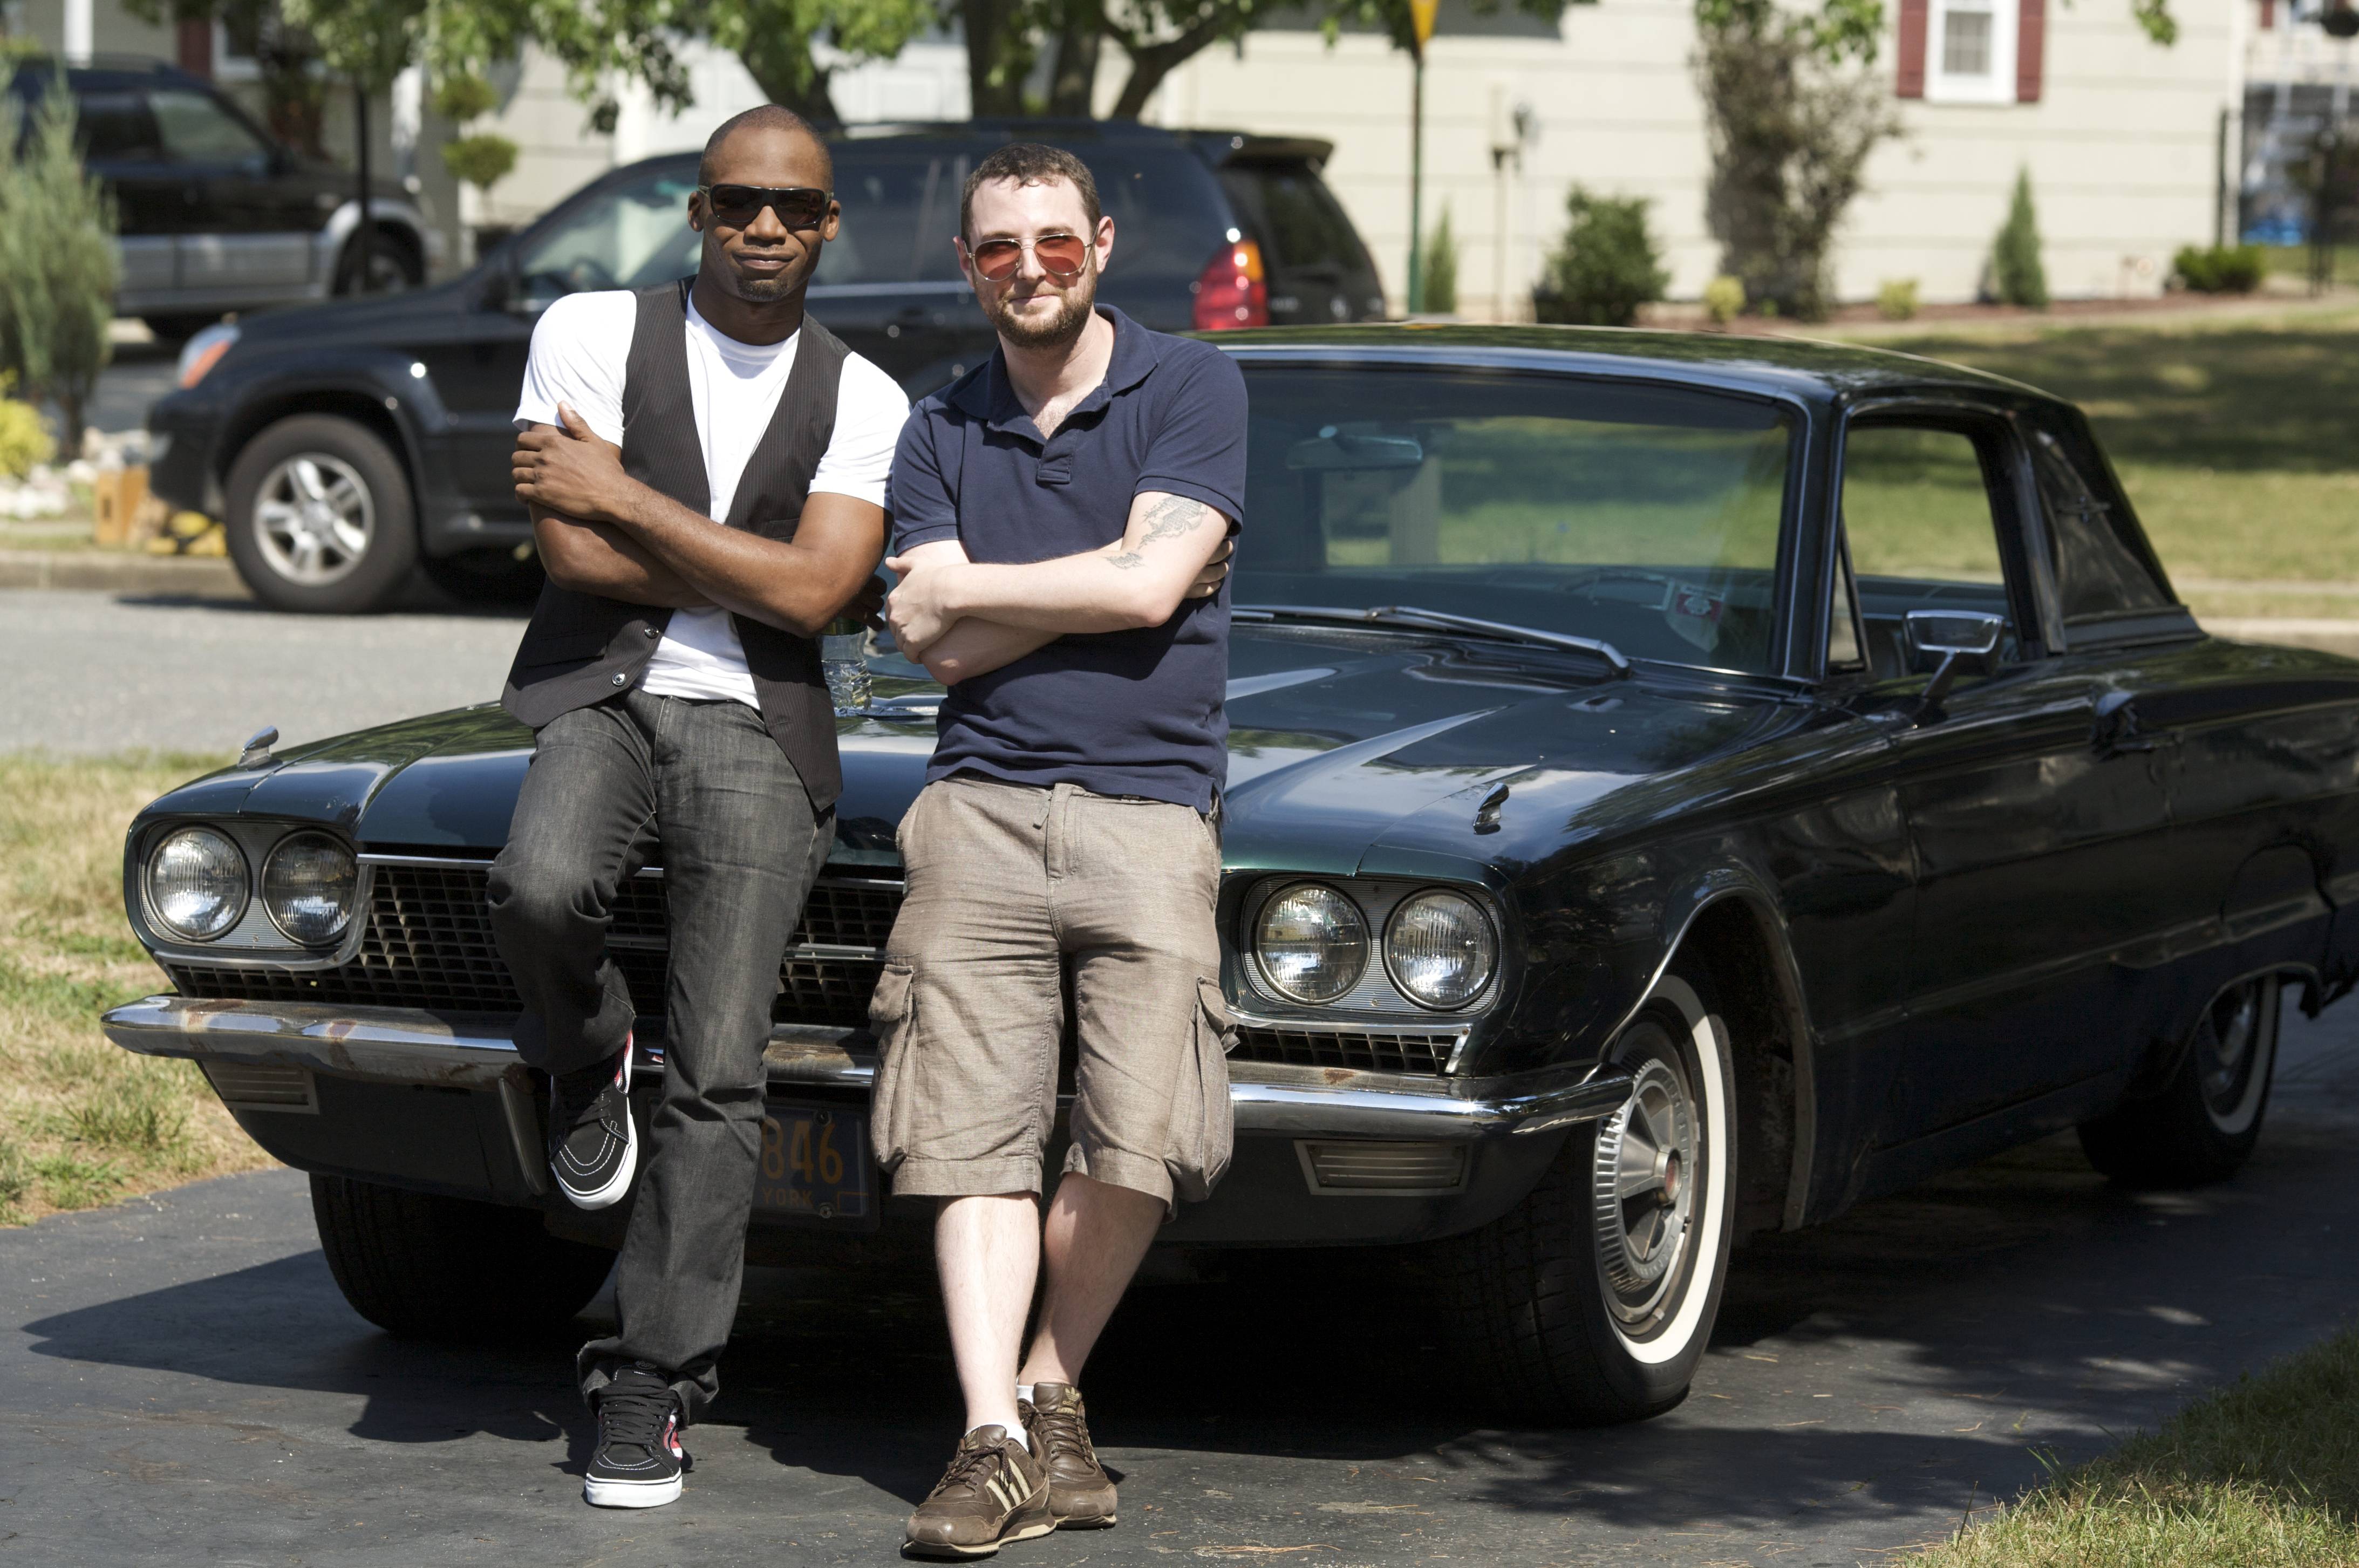 Adam Reid and Dave Williams, masters of the car pose.